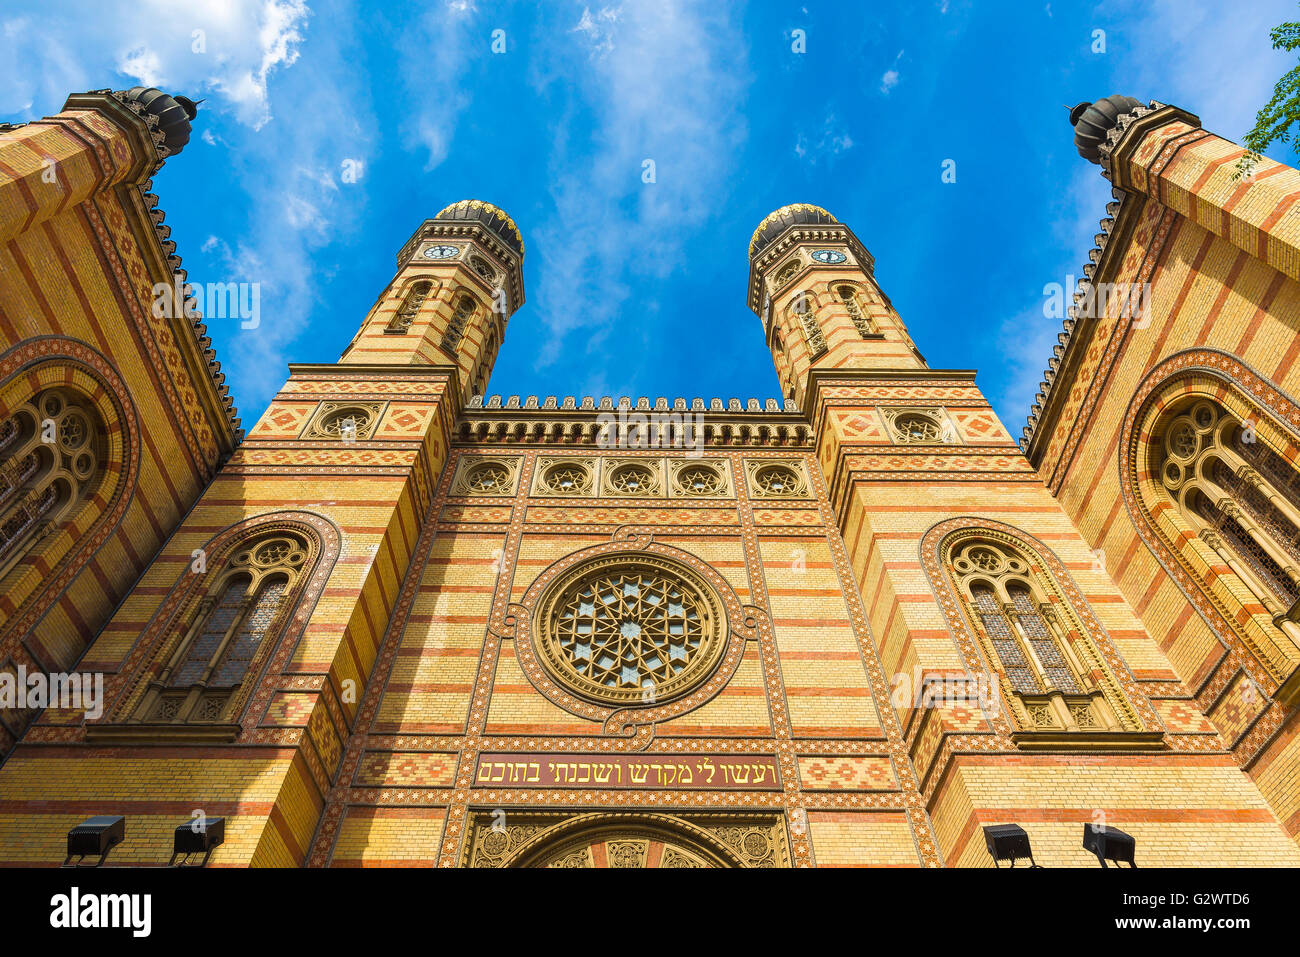 Dohany utca Synagogue in the old Jewish quarter (in the Erzsebetvaros district) of Budapest, Hungary. - Stock Image